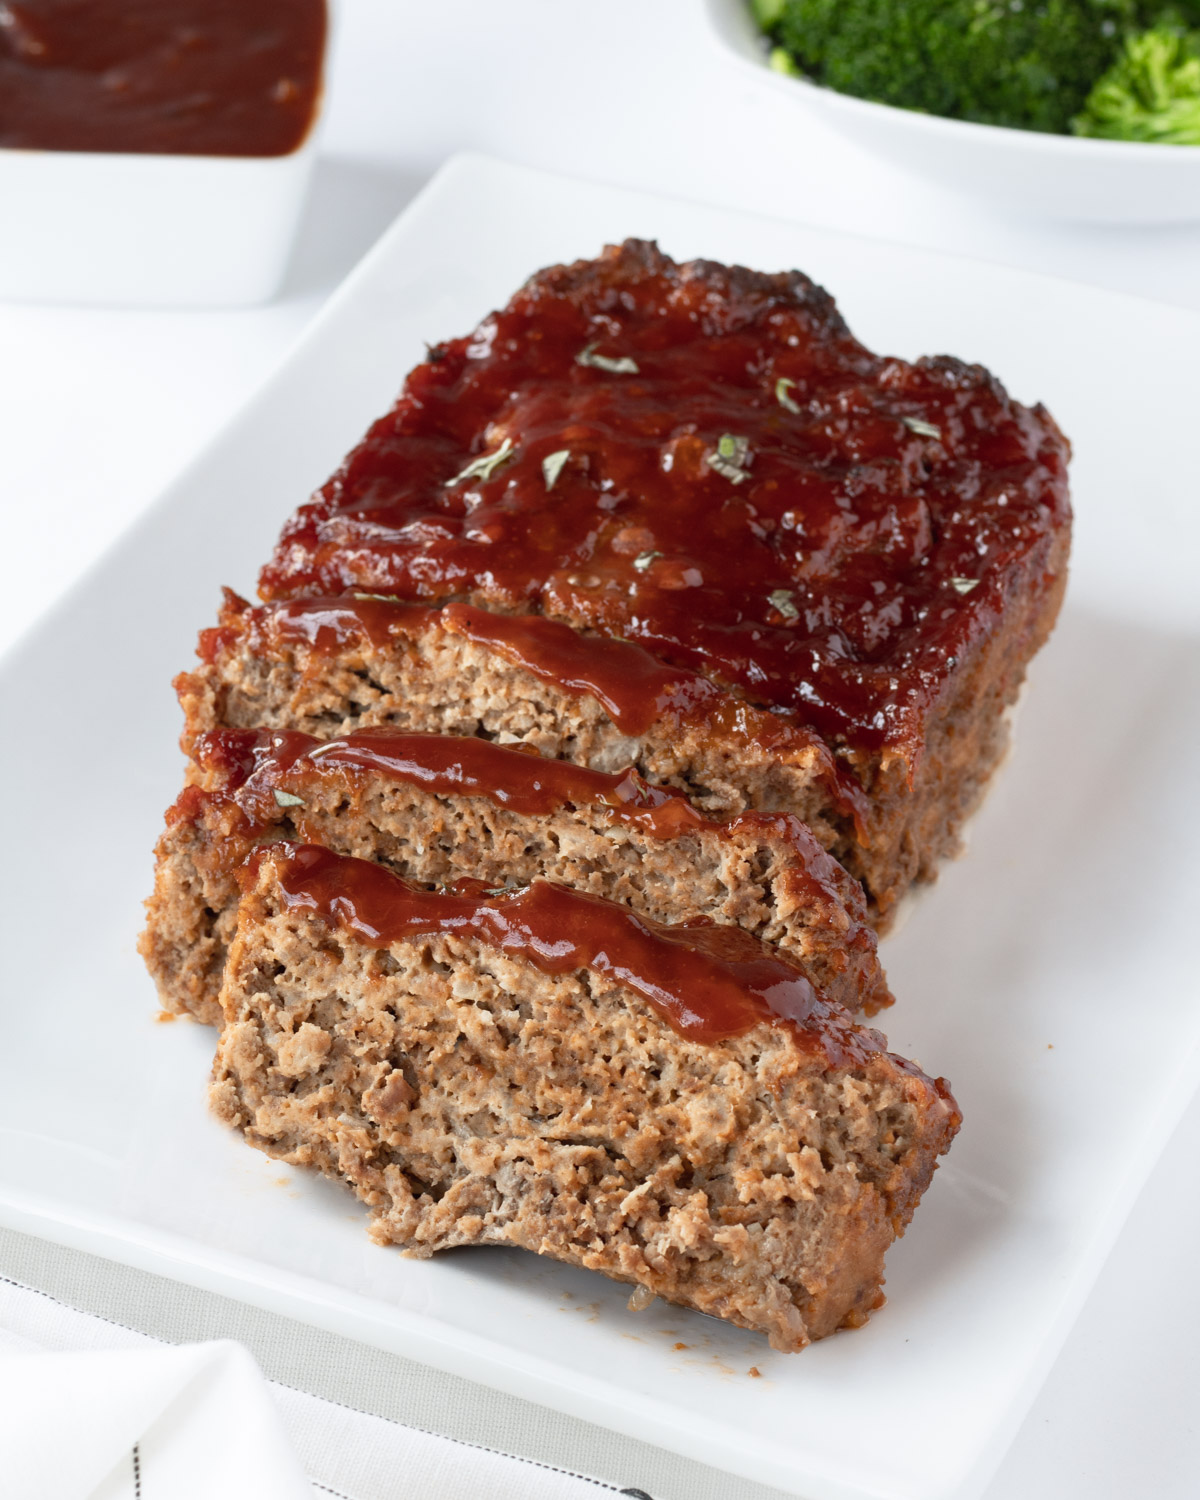 Meatloaf topped with sauce on a white plate.